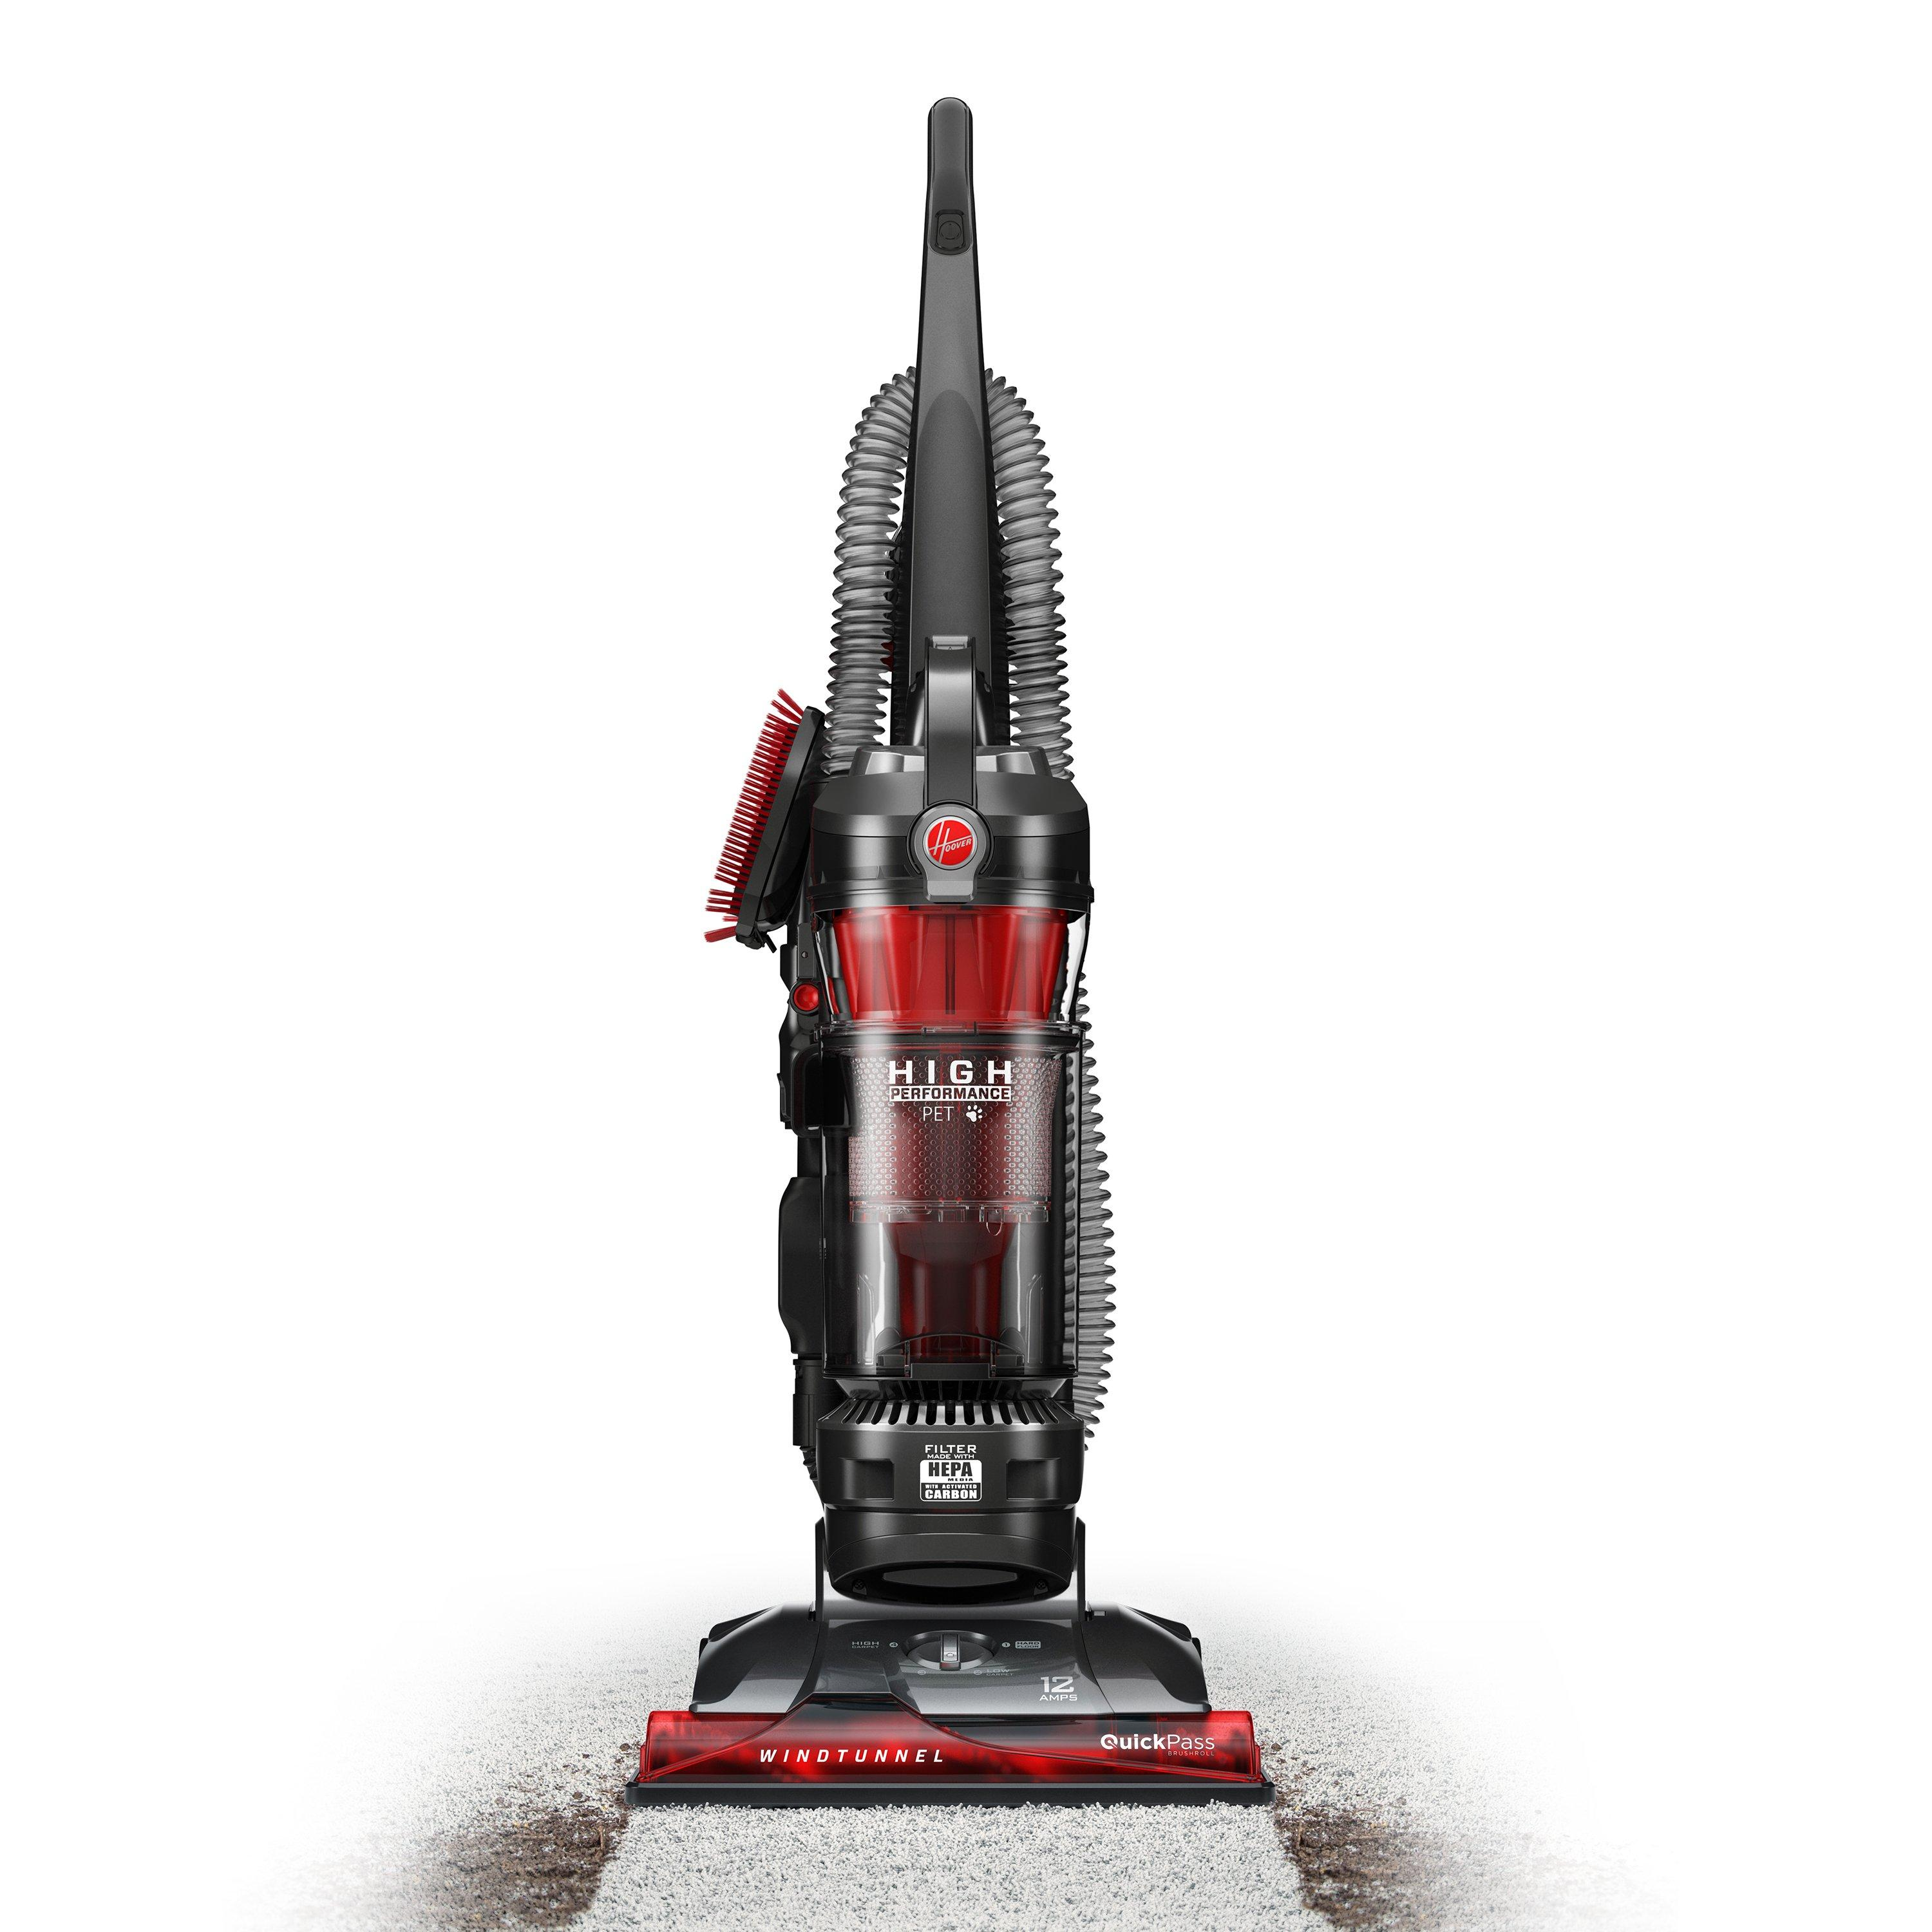 WindTunnel 3 High Performance Pet Upright Vacuum